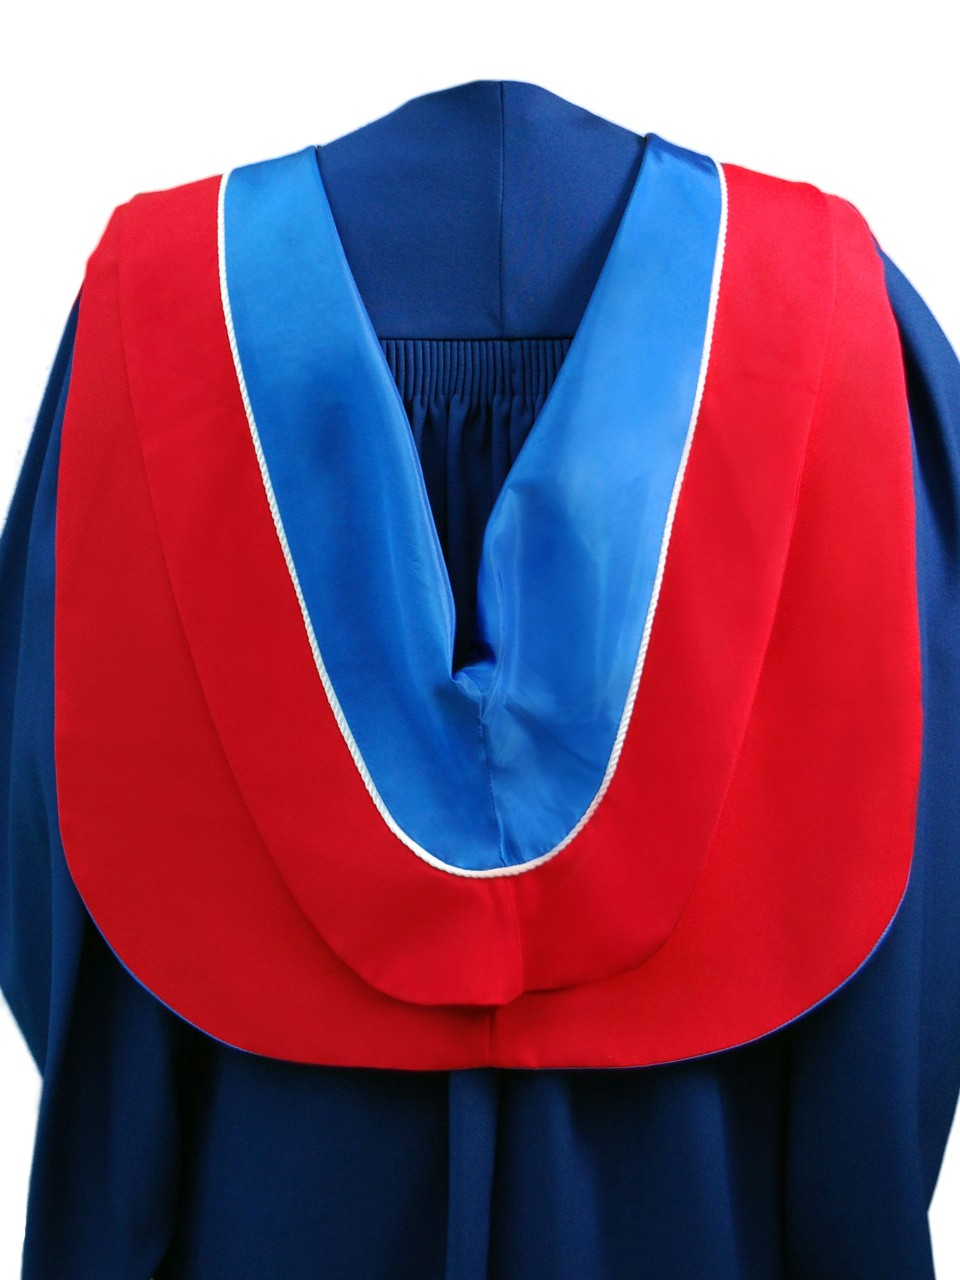 The Master of Public Policy hood is red with blue underside and white cording.